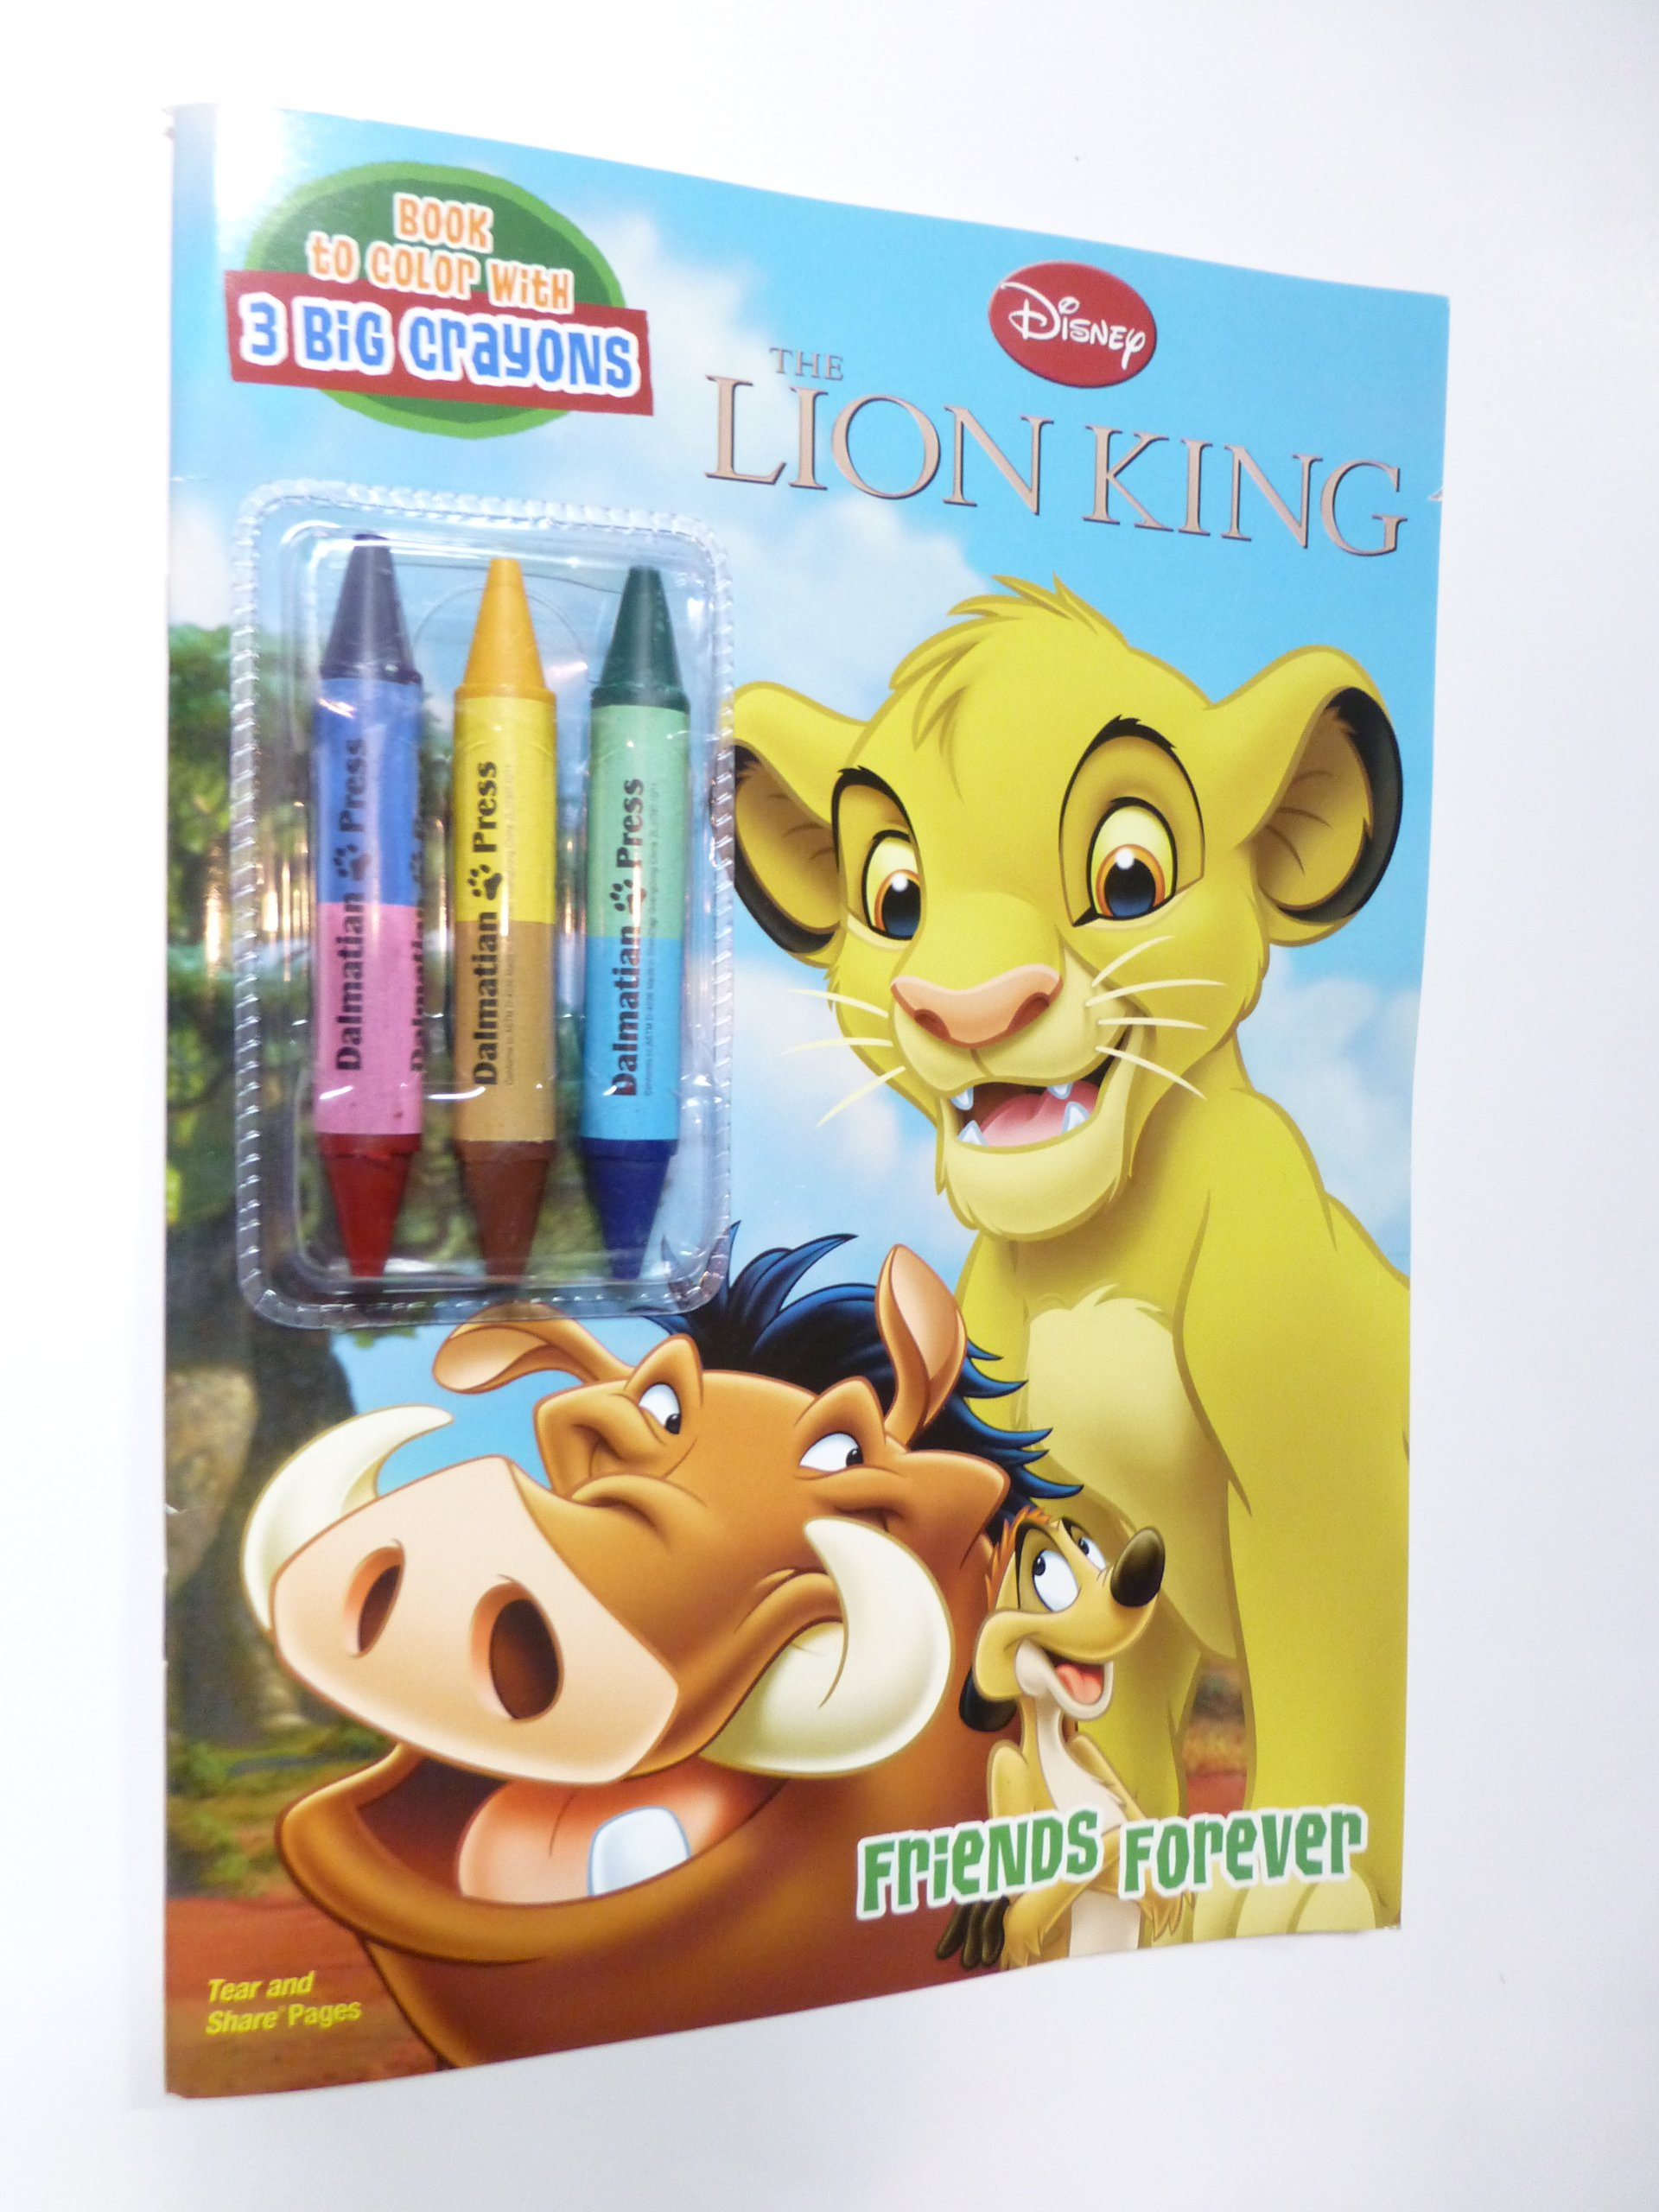 Disney The Lion King Book To Color With Big Crayons Disney S Lion King Dalmatian Press 9781403764126 Amazon Com Books